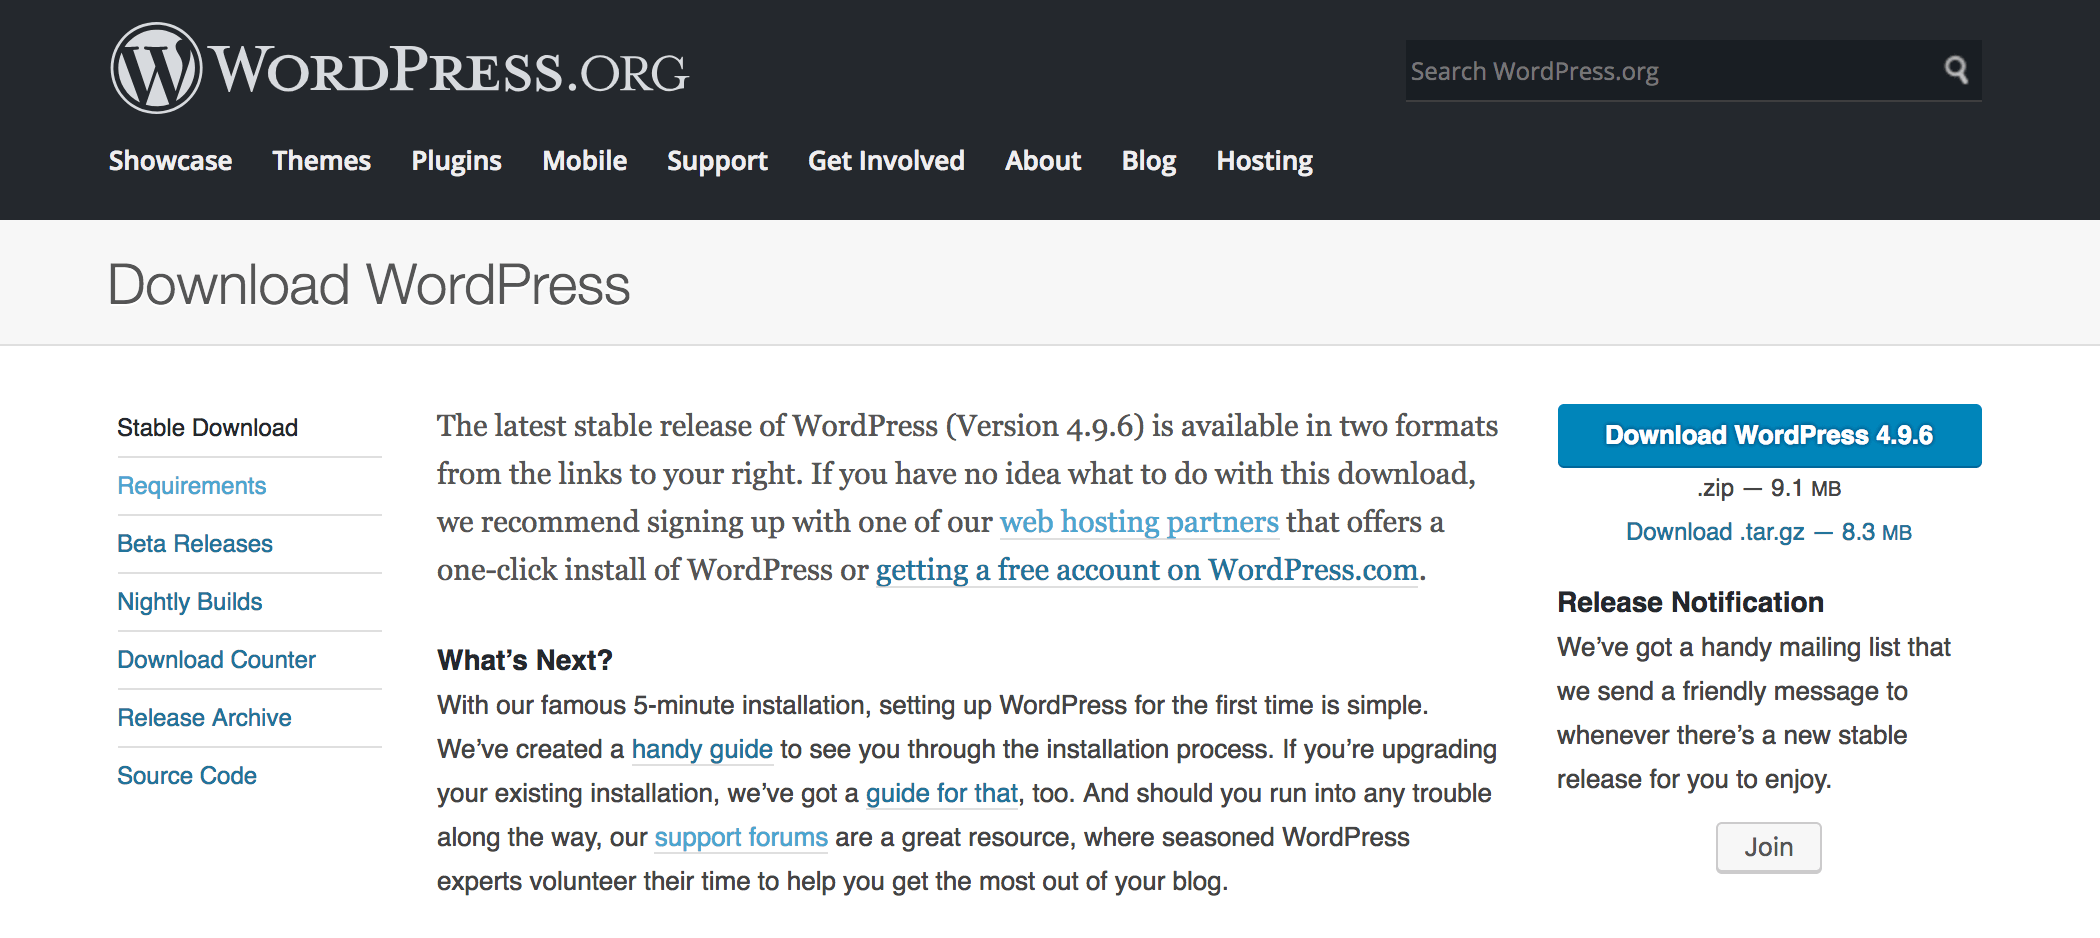 Downloading WordPress from the website.